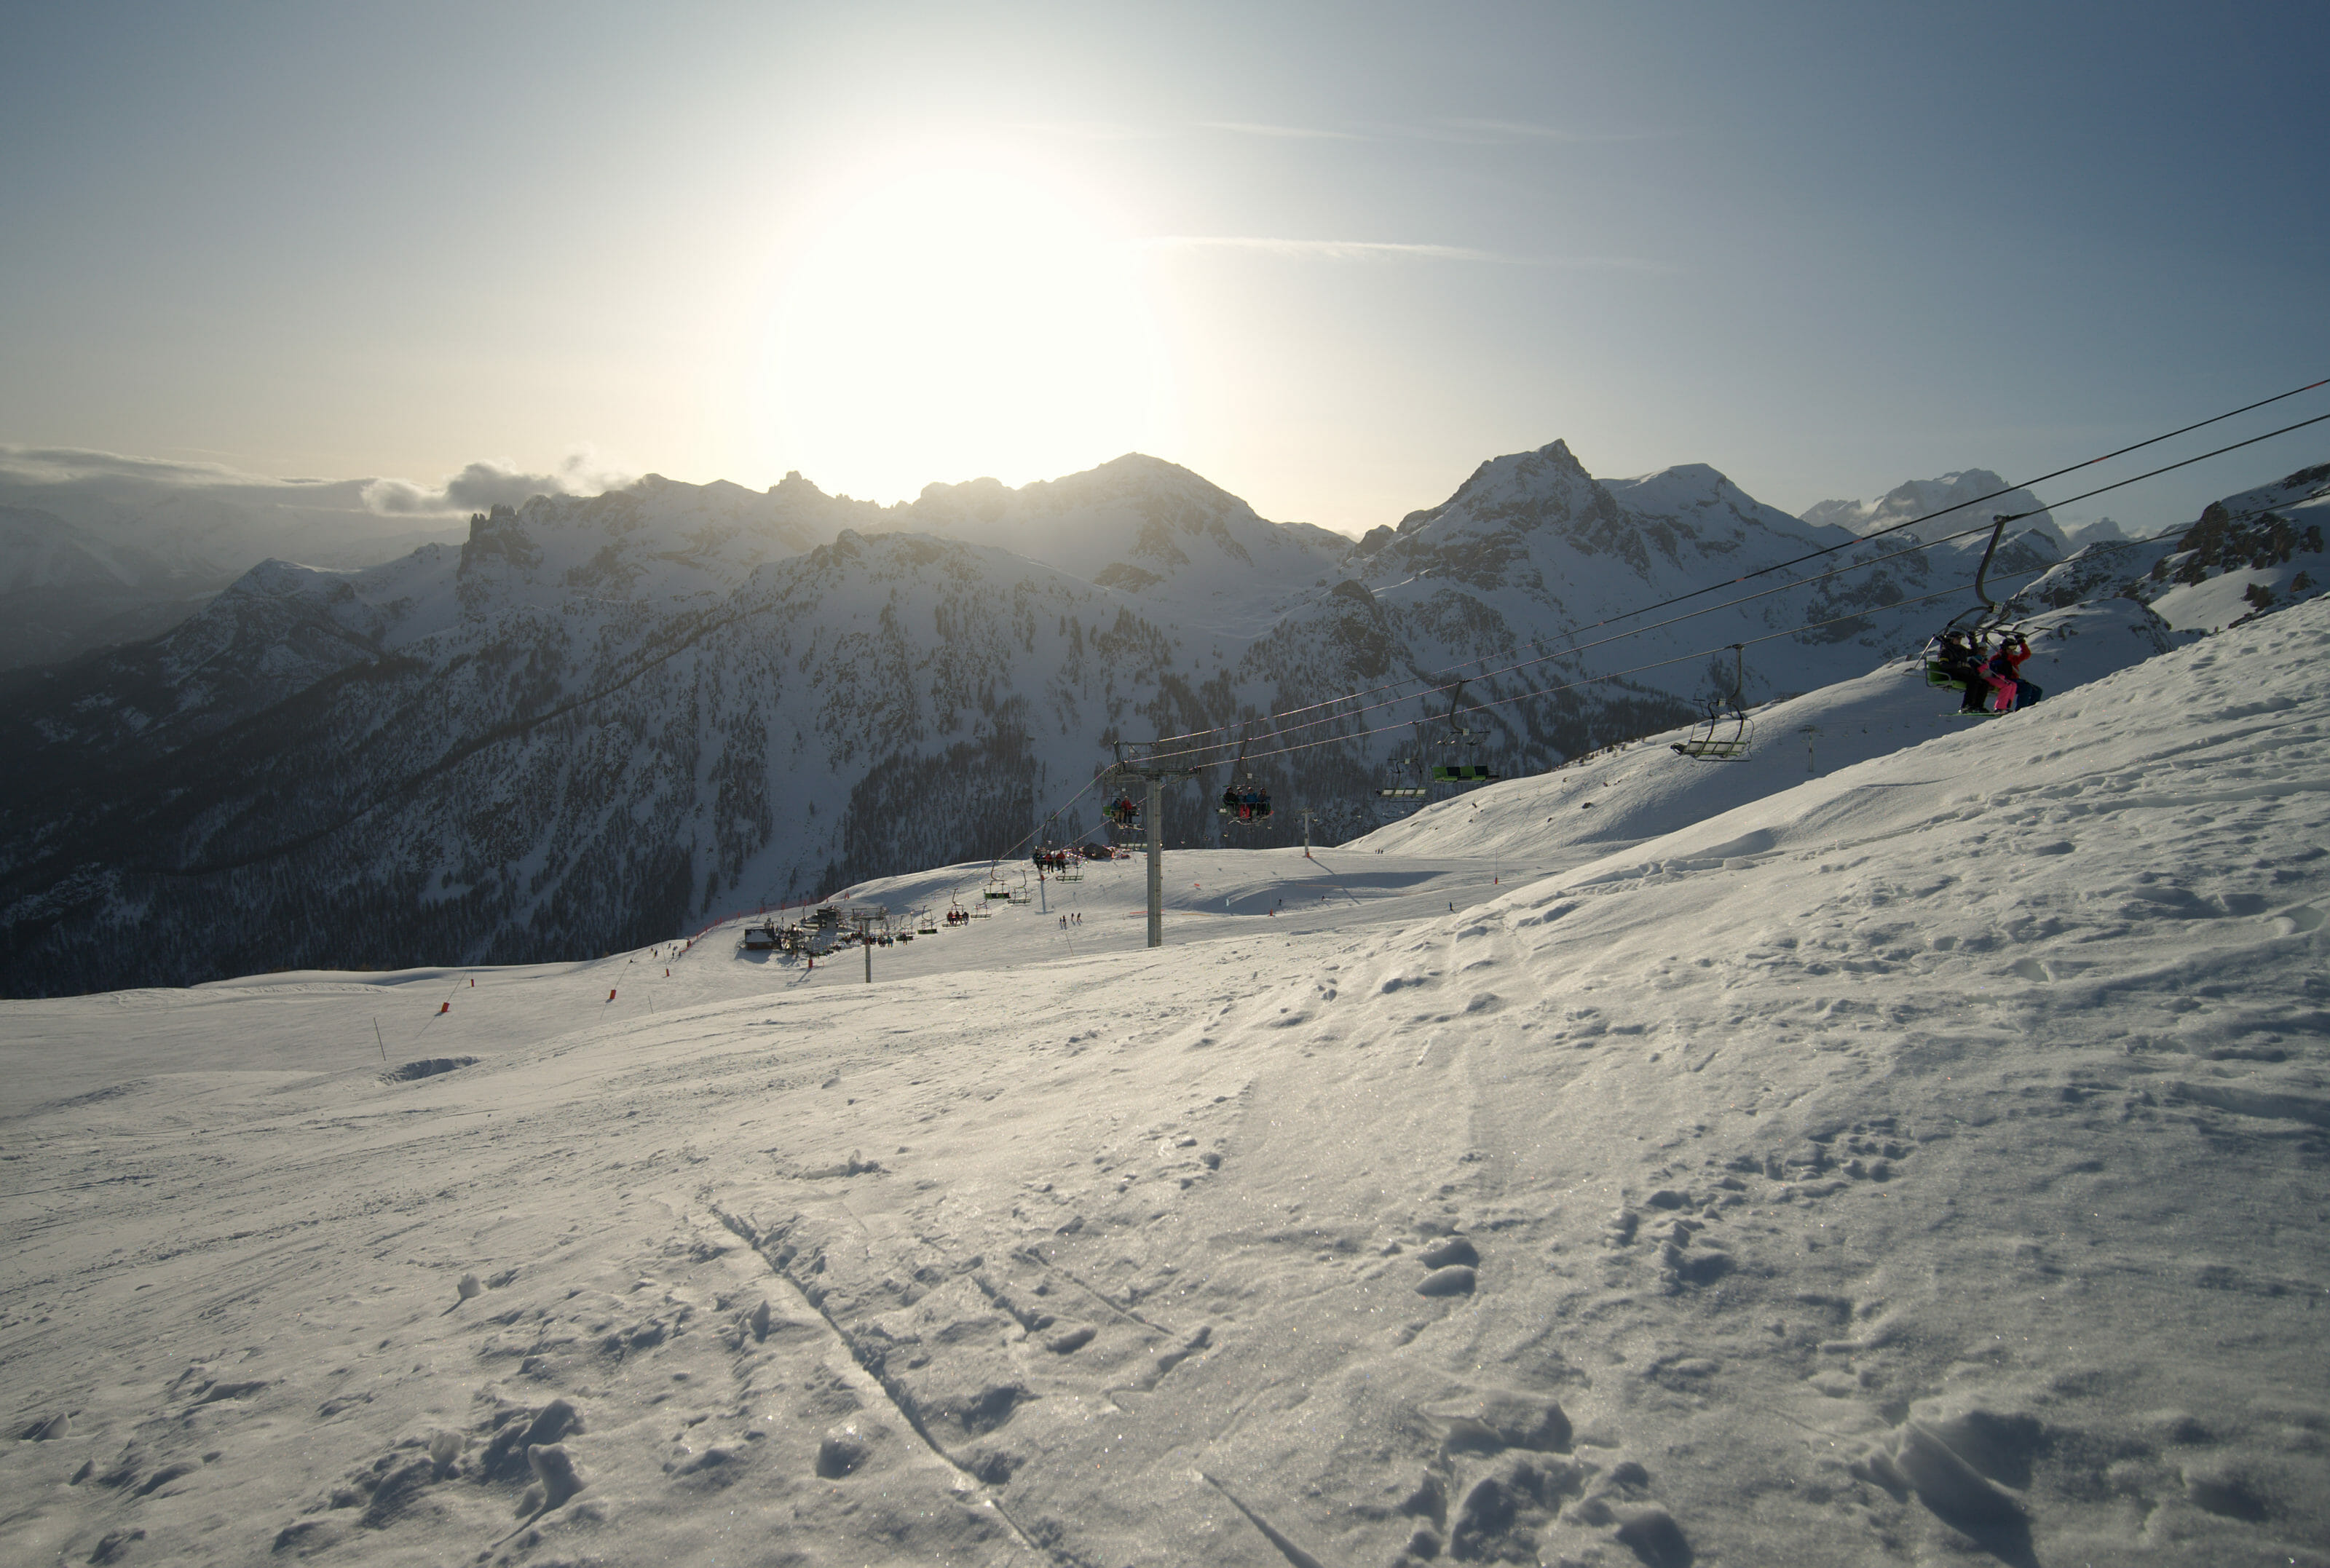 end of the day on the slopes